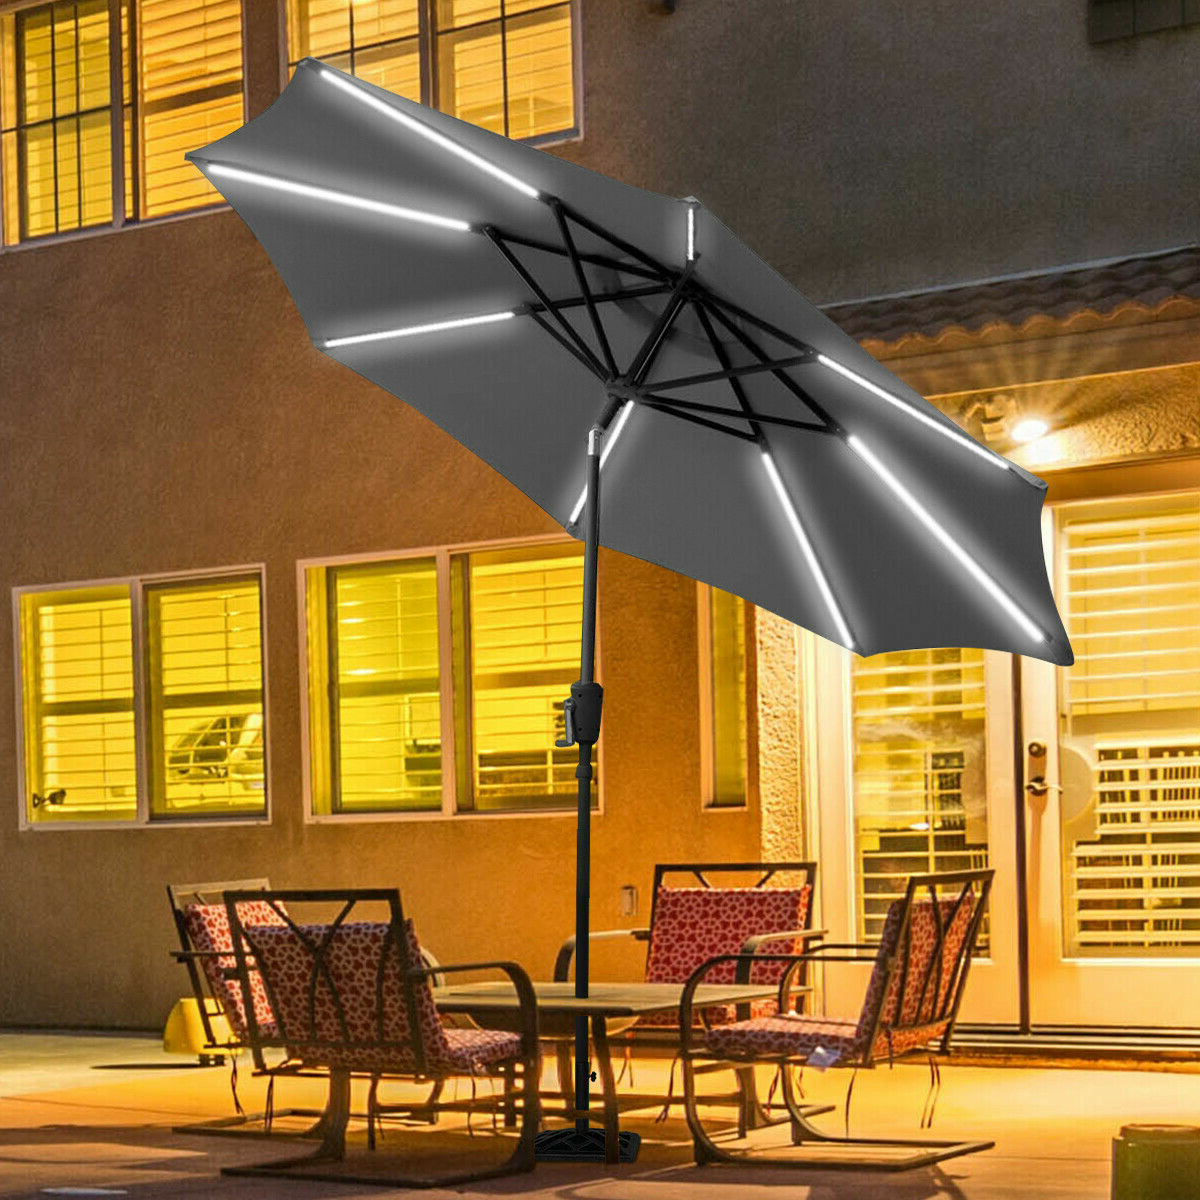 2020 Sinclair 9' Patio Led Light Market Umbrella Inside Herlinda Solar Lighted Market Umbrellas (View 13 of 20)